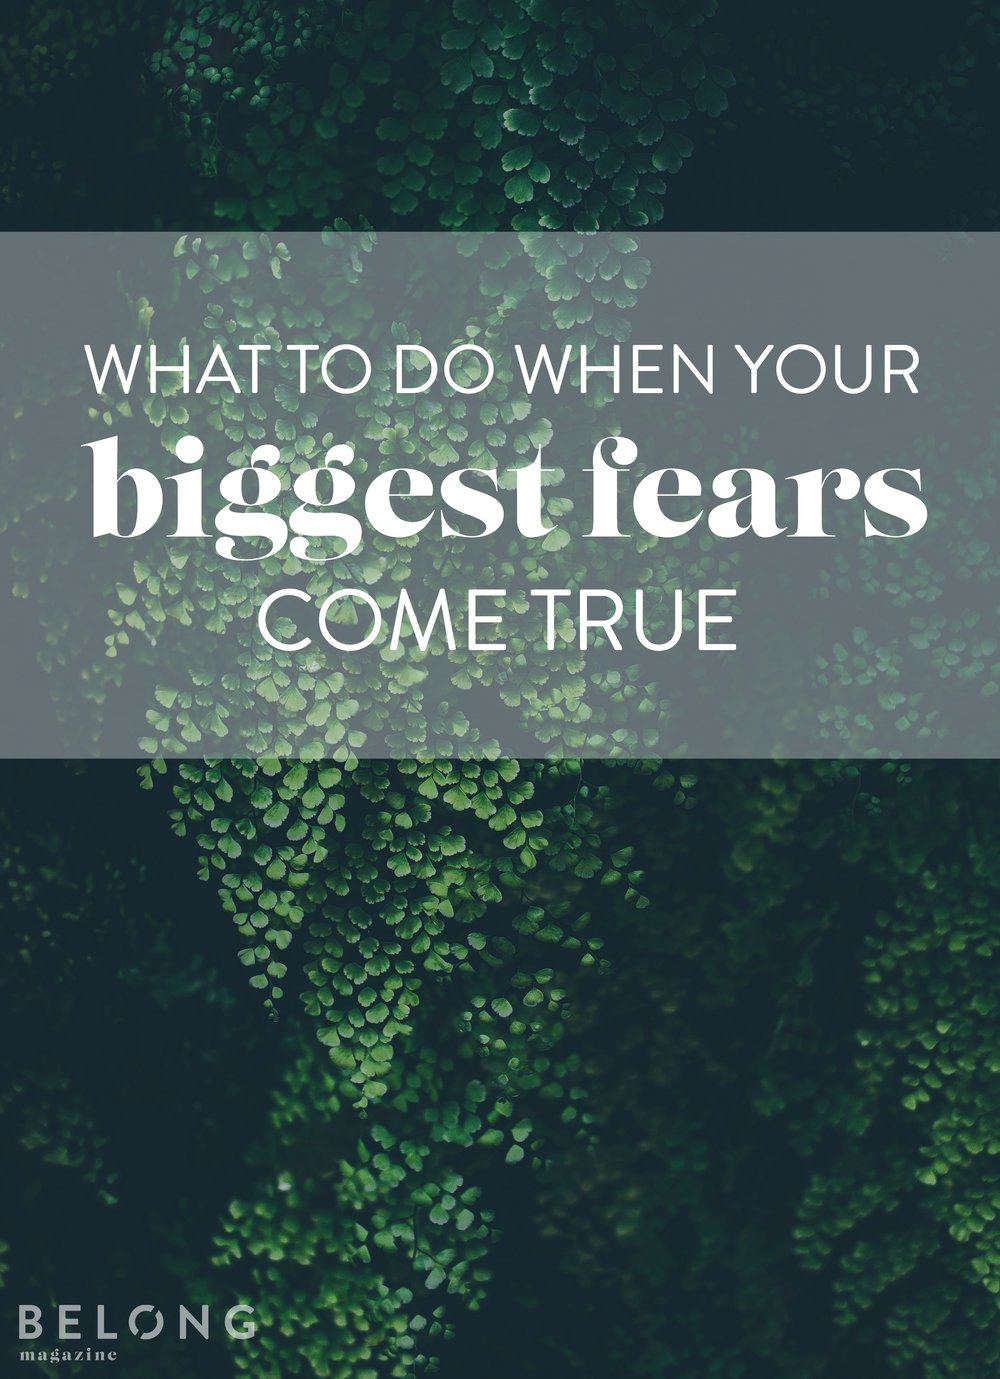 what to do when your biggest fears come true - ACE backpacks - belong magazine blog - female entrepreneurs, women in business